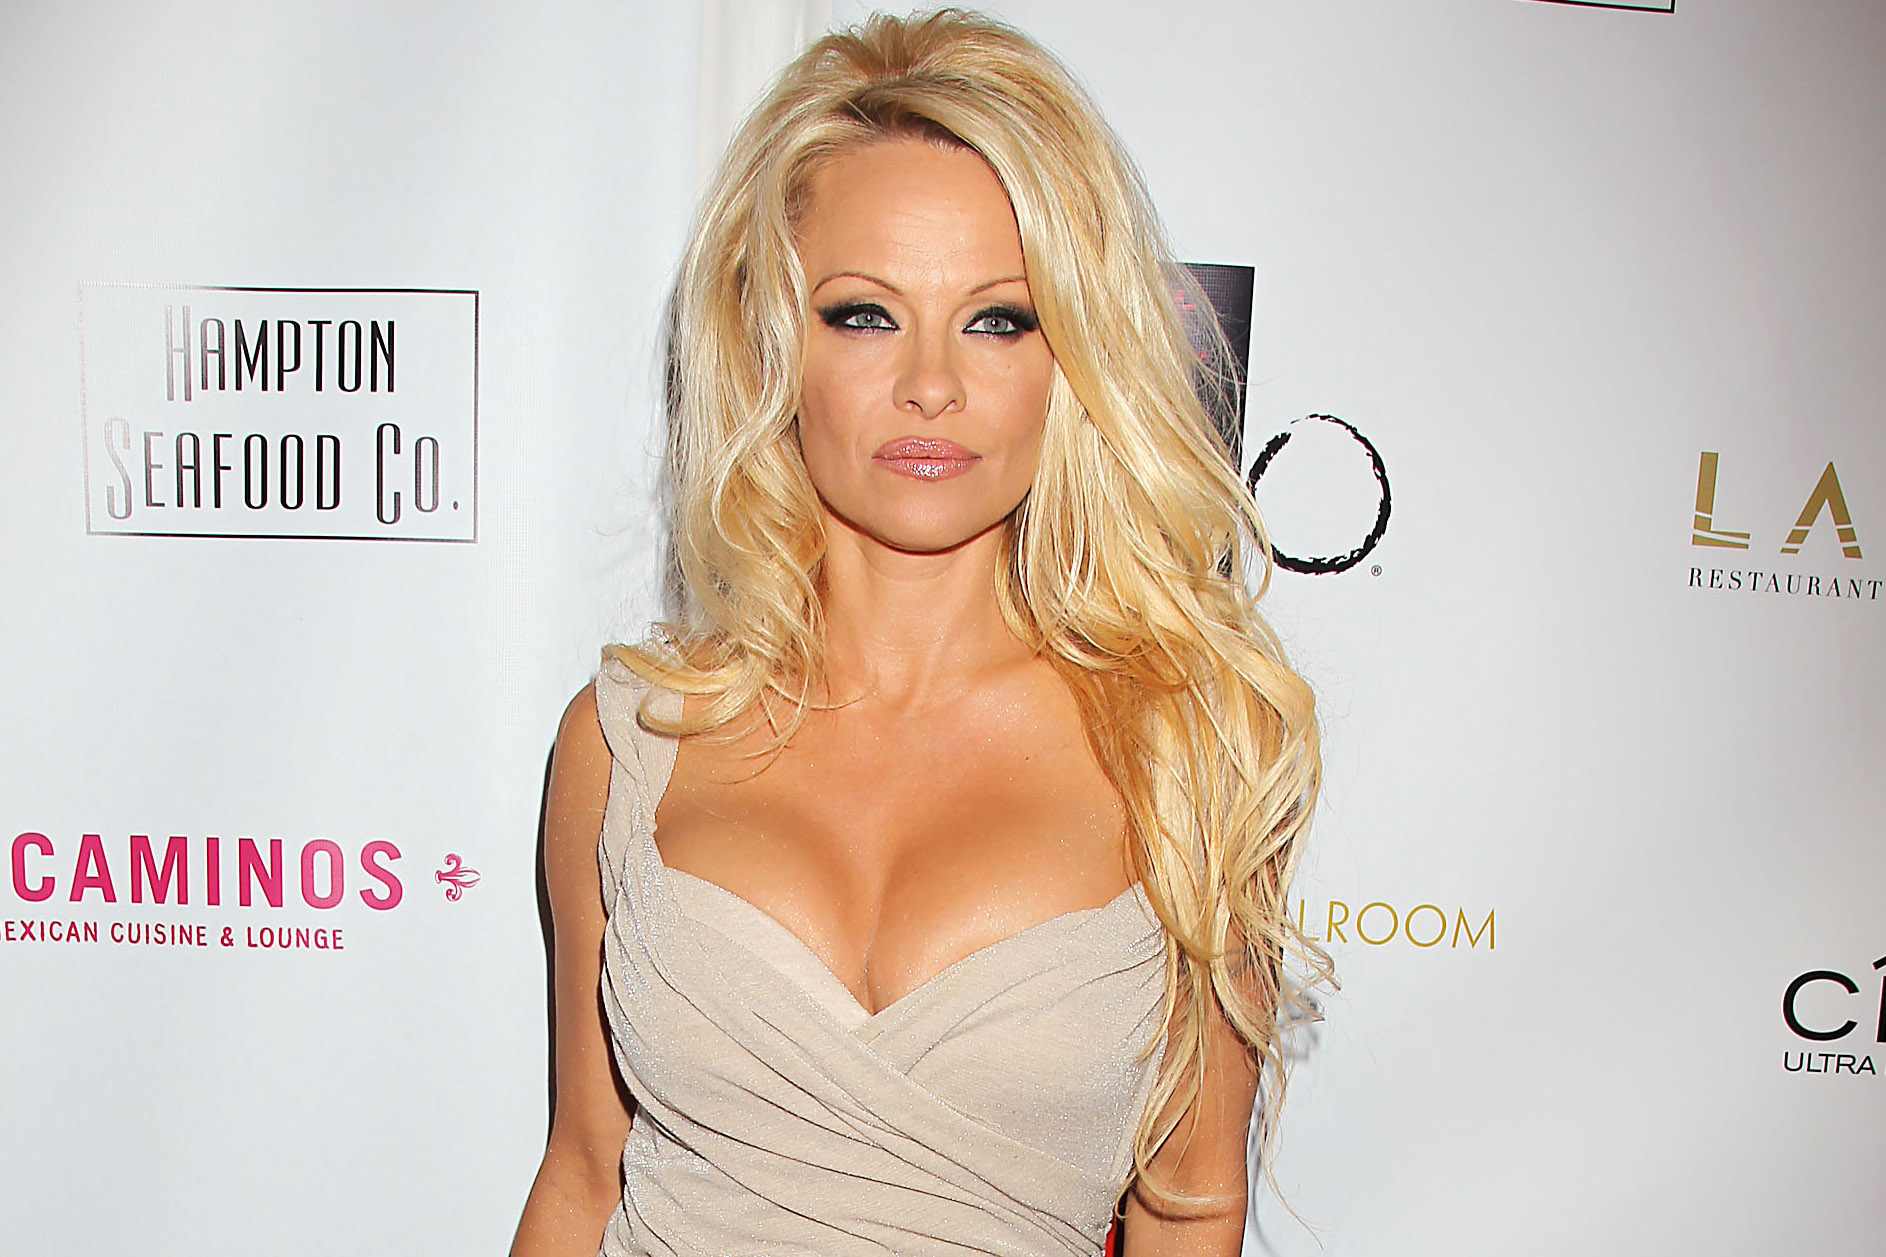 Pamela Anderson born July 1, 1967 (age 51) Pamela Anderson born July 1, 1967 (age 51) new photo